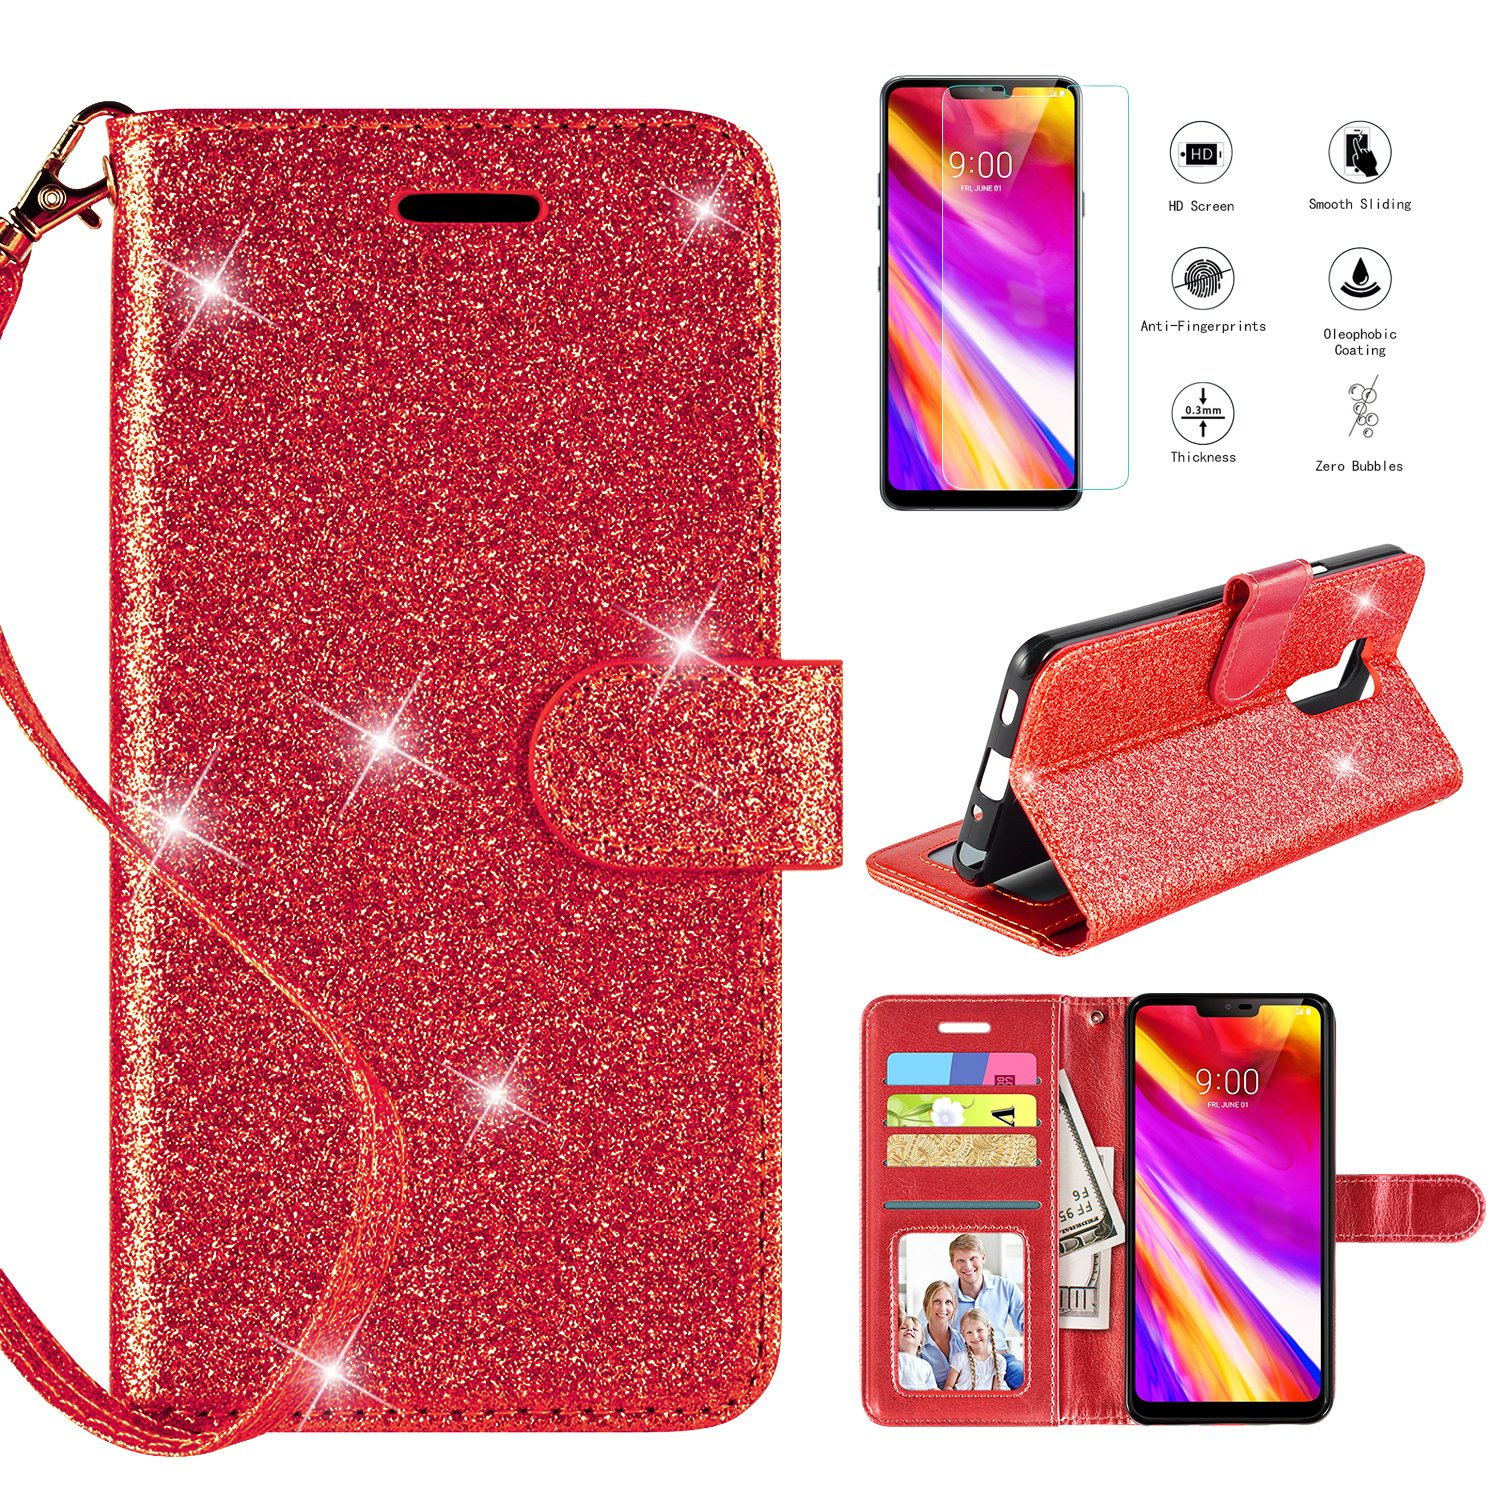 LG G7 ThinQ Wallet Case with [HD Screen Protector],Casekey [Kickstand] [Card Slots] [Wrist Strap] 2 in 1 Glitter Magnetic Flip PU Leather Wallet Cover Compatible LG G7 Thinq,Red